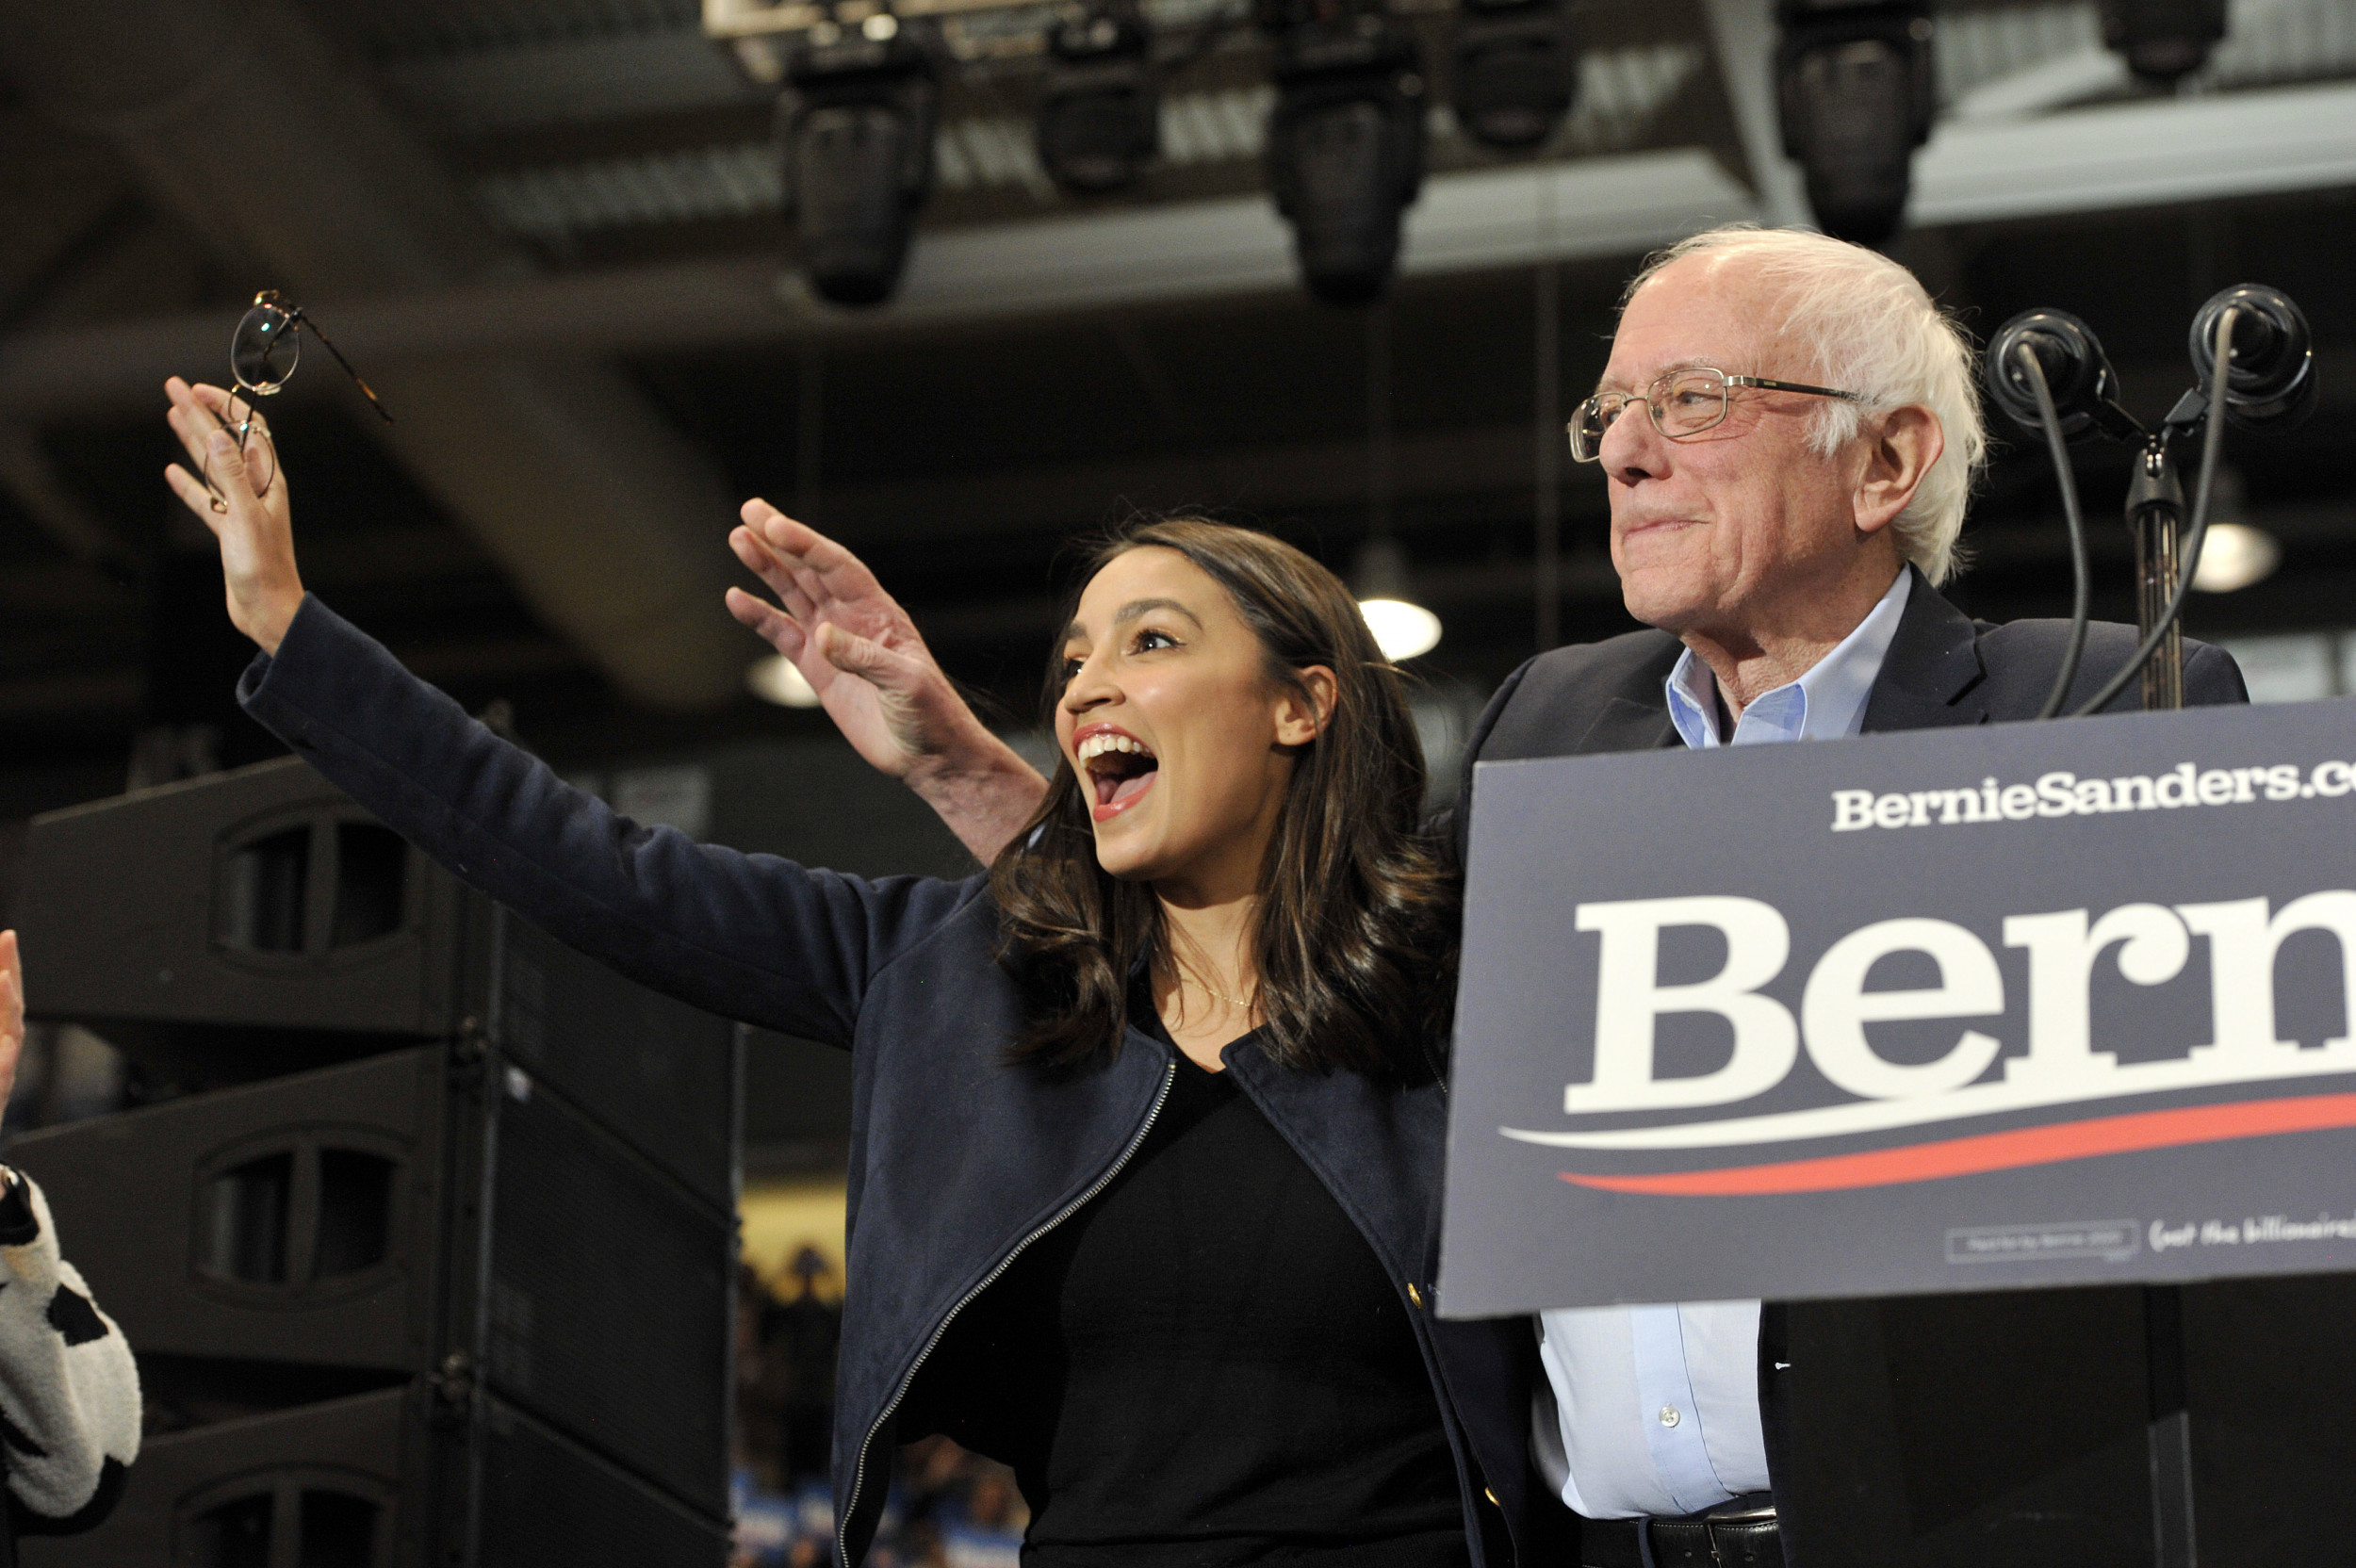 Bernie Sanders and AOC Get Just 2% Each in 2024 Iowa Democratic Caucus Poll